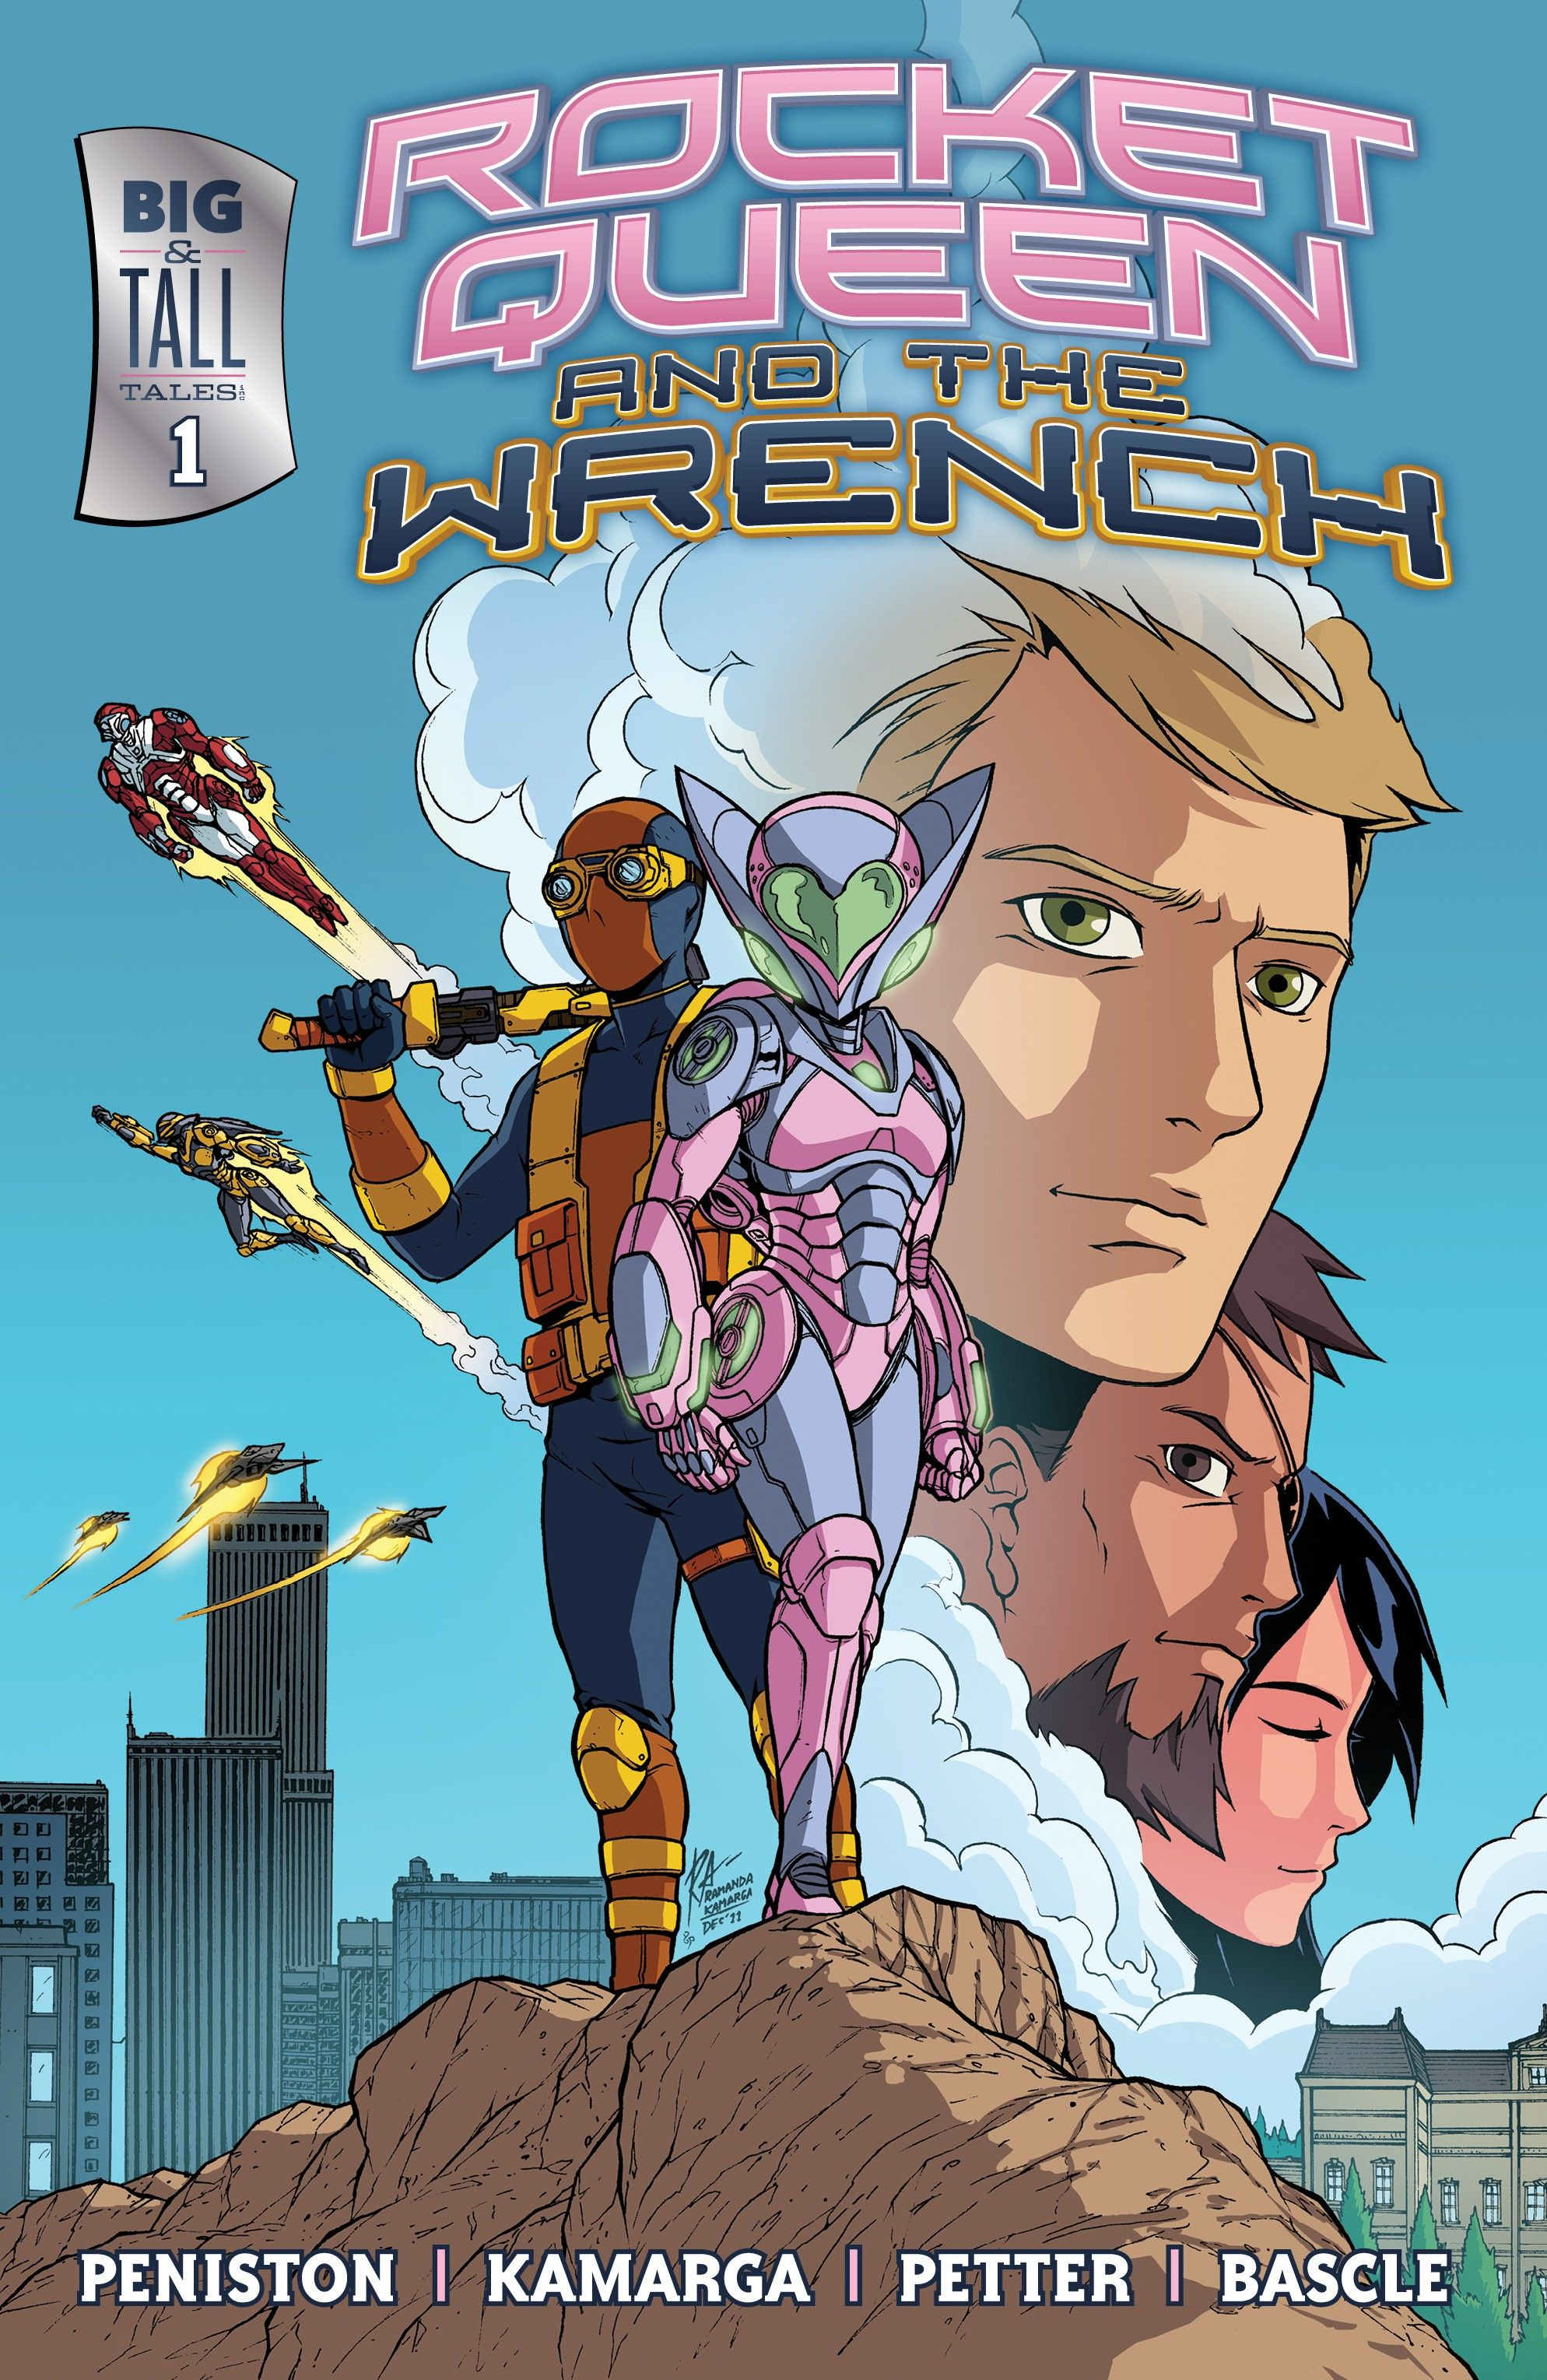 Rocket Queen and The Wrench #1 - With art by Ramanda Kamarga, colors by Rainer Petter, and lettering/design by Jacob Bascle. Oh, and written by ME. Lots of fun for $.99!!!